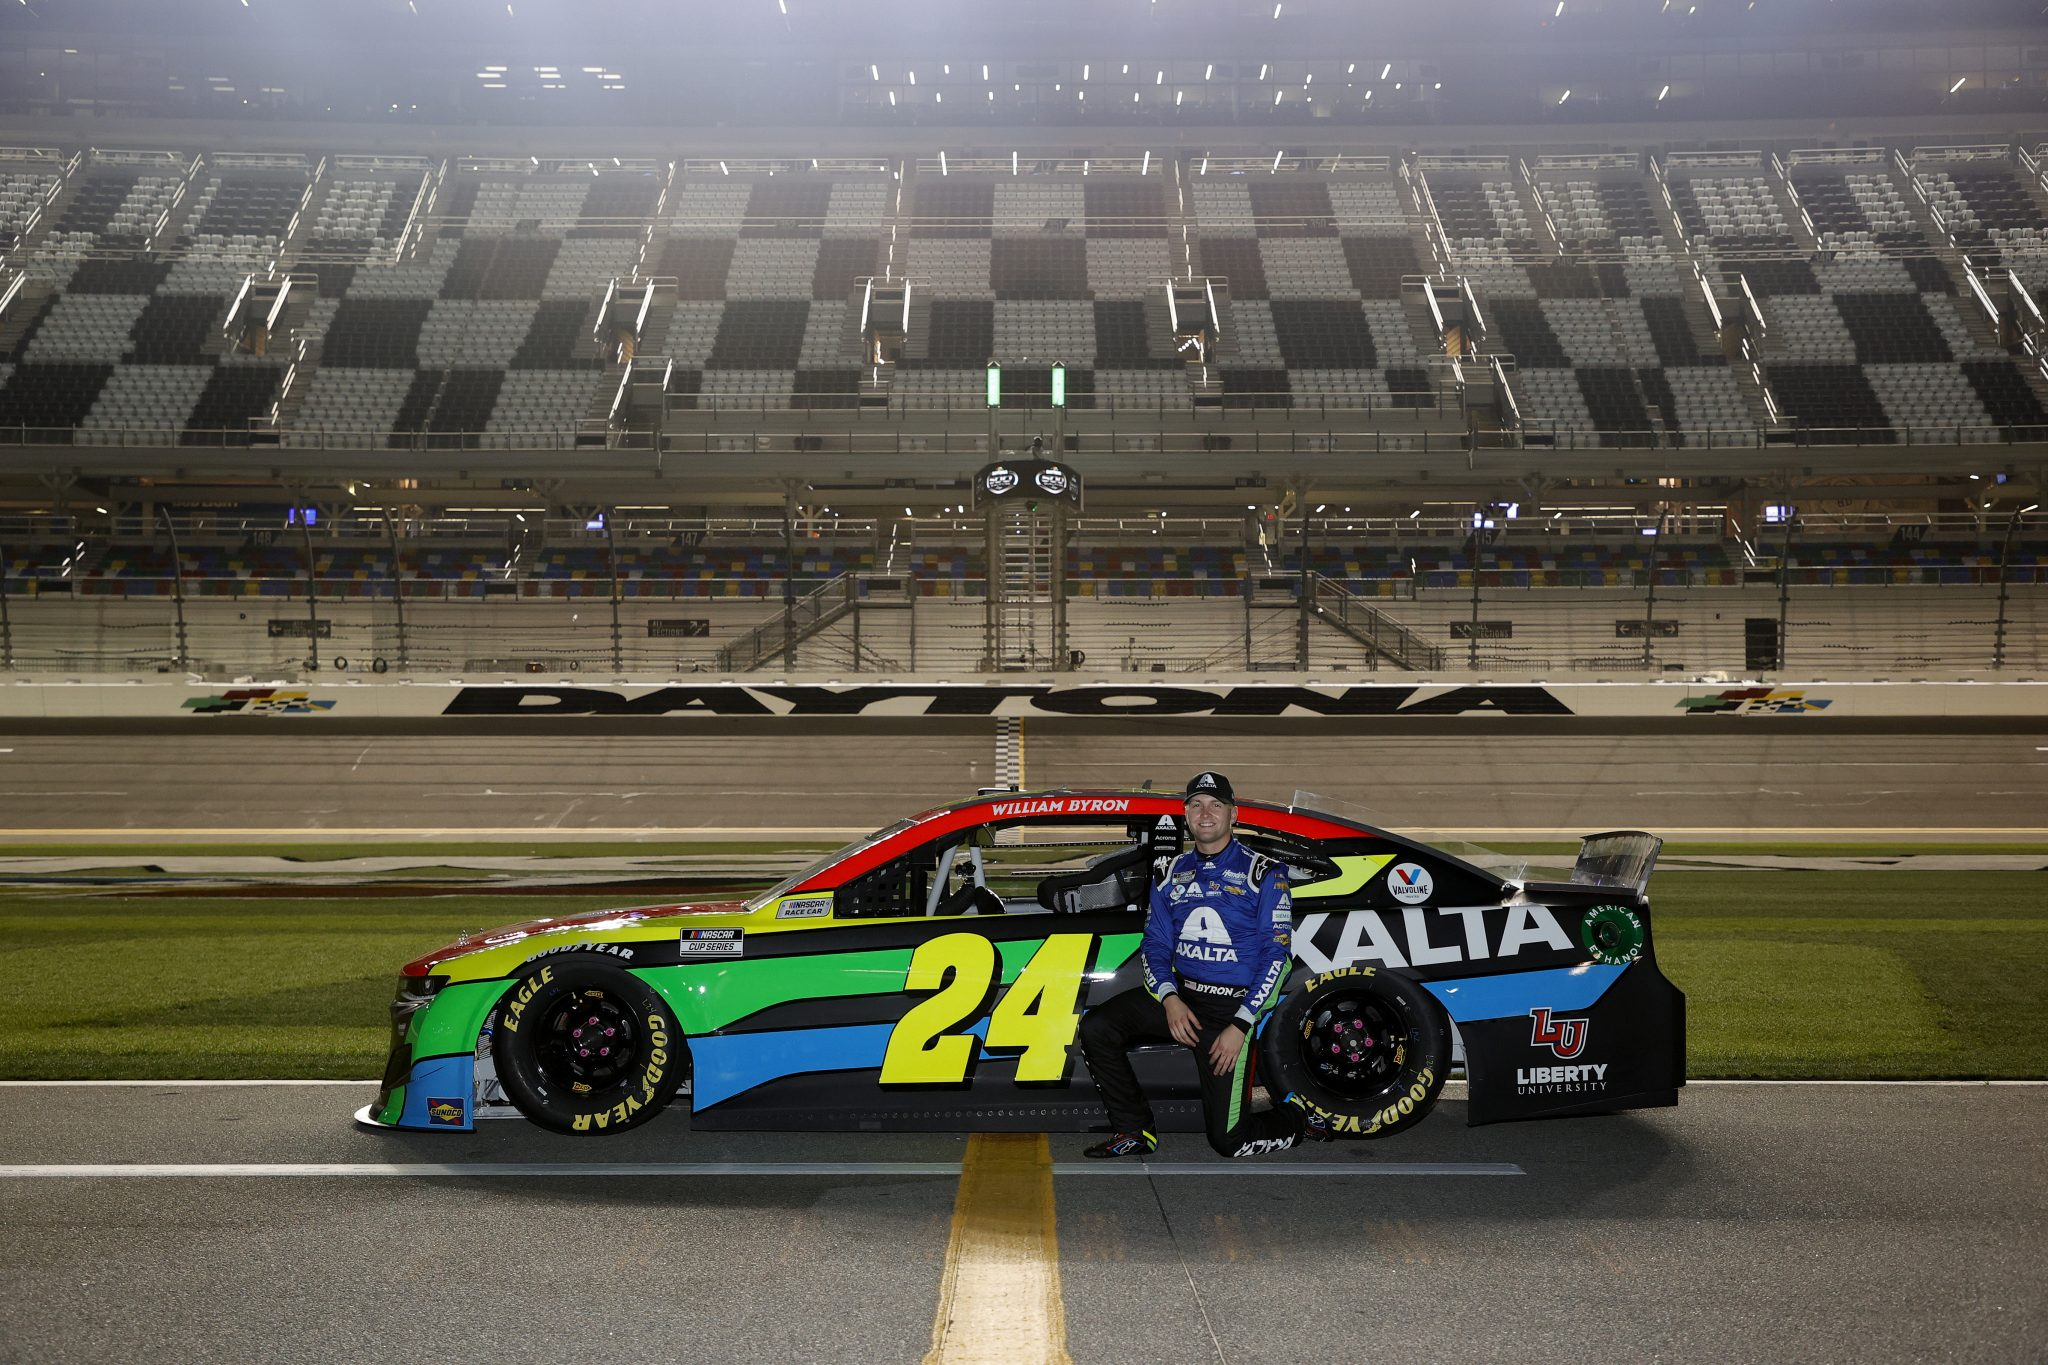 DAYTONA BEACH, FLORIDA - FEBRUARY 10: William Byron, driver of the #24 Axalta Chevrolet, poses for photos during qualifying for the NASCAR Cup Series 63rd Annual Daytona 500 at Daytona International Speedway on February 10, 2021 in Daytona Beach, Florida. (Photo by Jared C. Tilton/Getty Images) | Getty Images